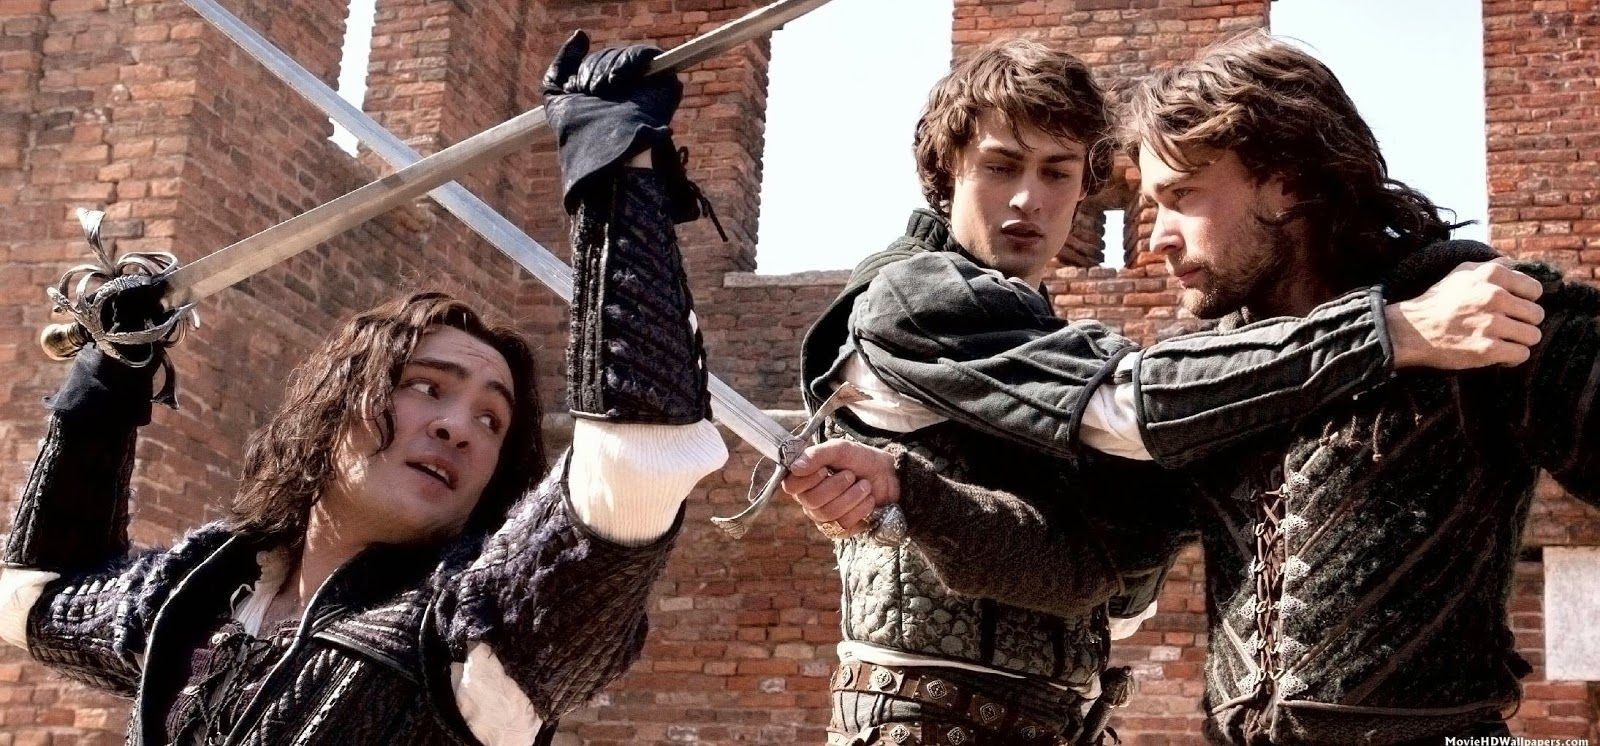 mercutio tybalt romeo juliet 2013 movie review romeo and mercutio tybalt romeo juliet 2013 movie review